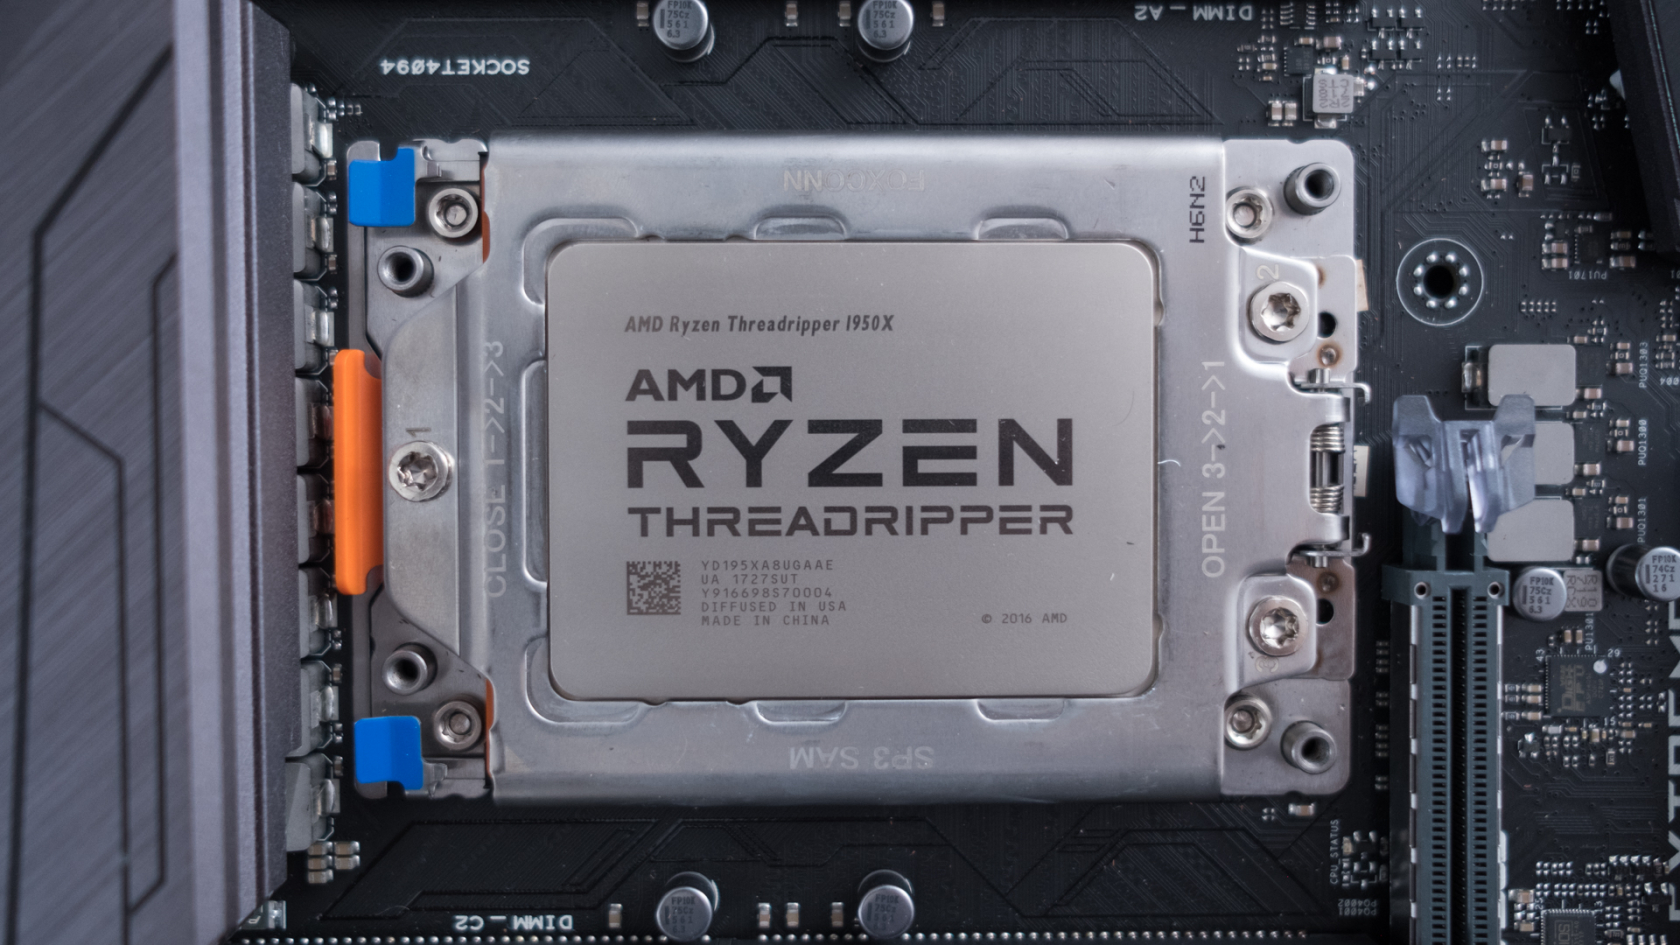 Amd Just Slashed The Price Of Its Ryzen Threadripper 1950x To 880